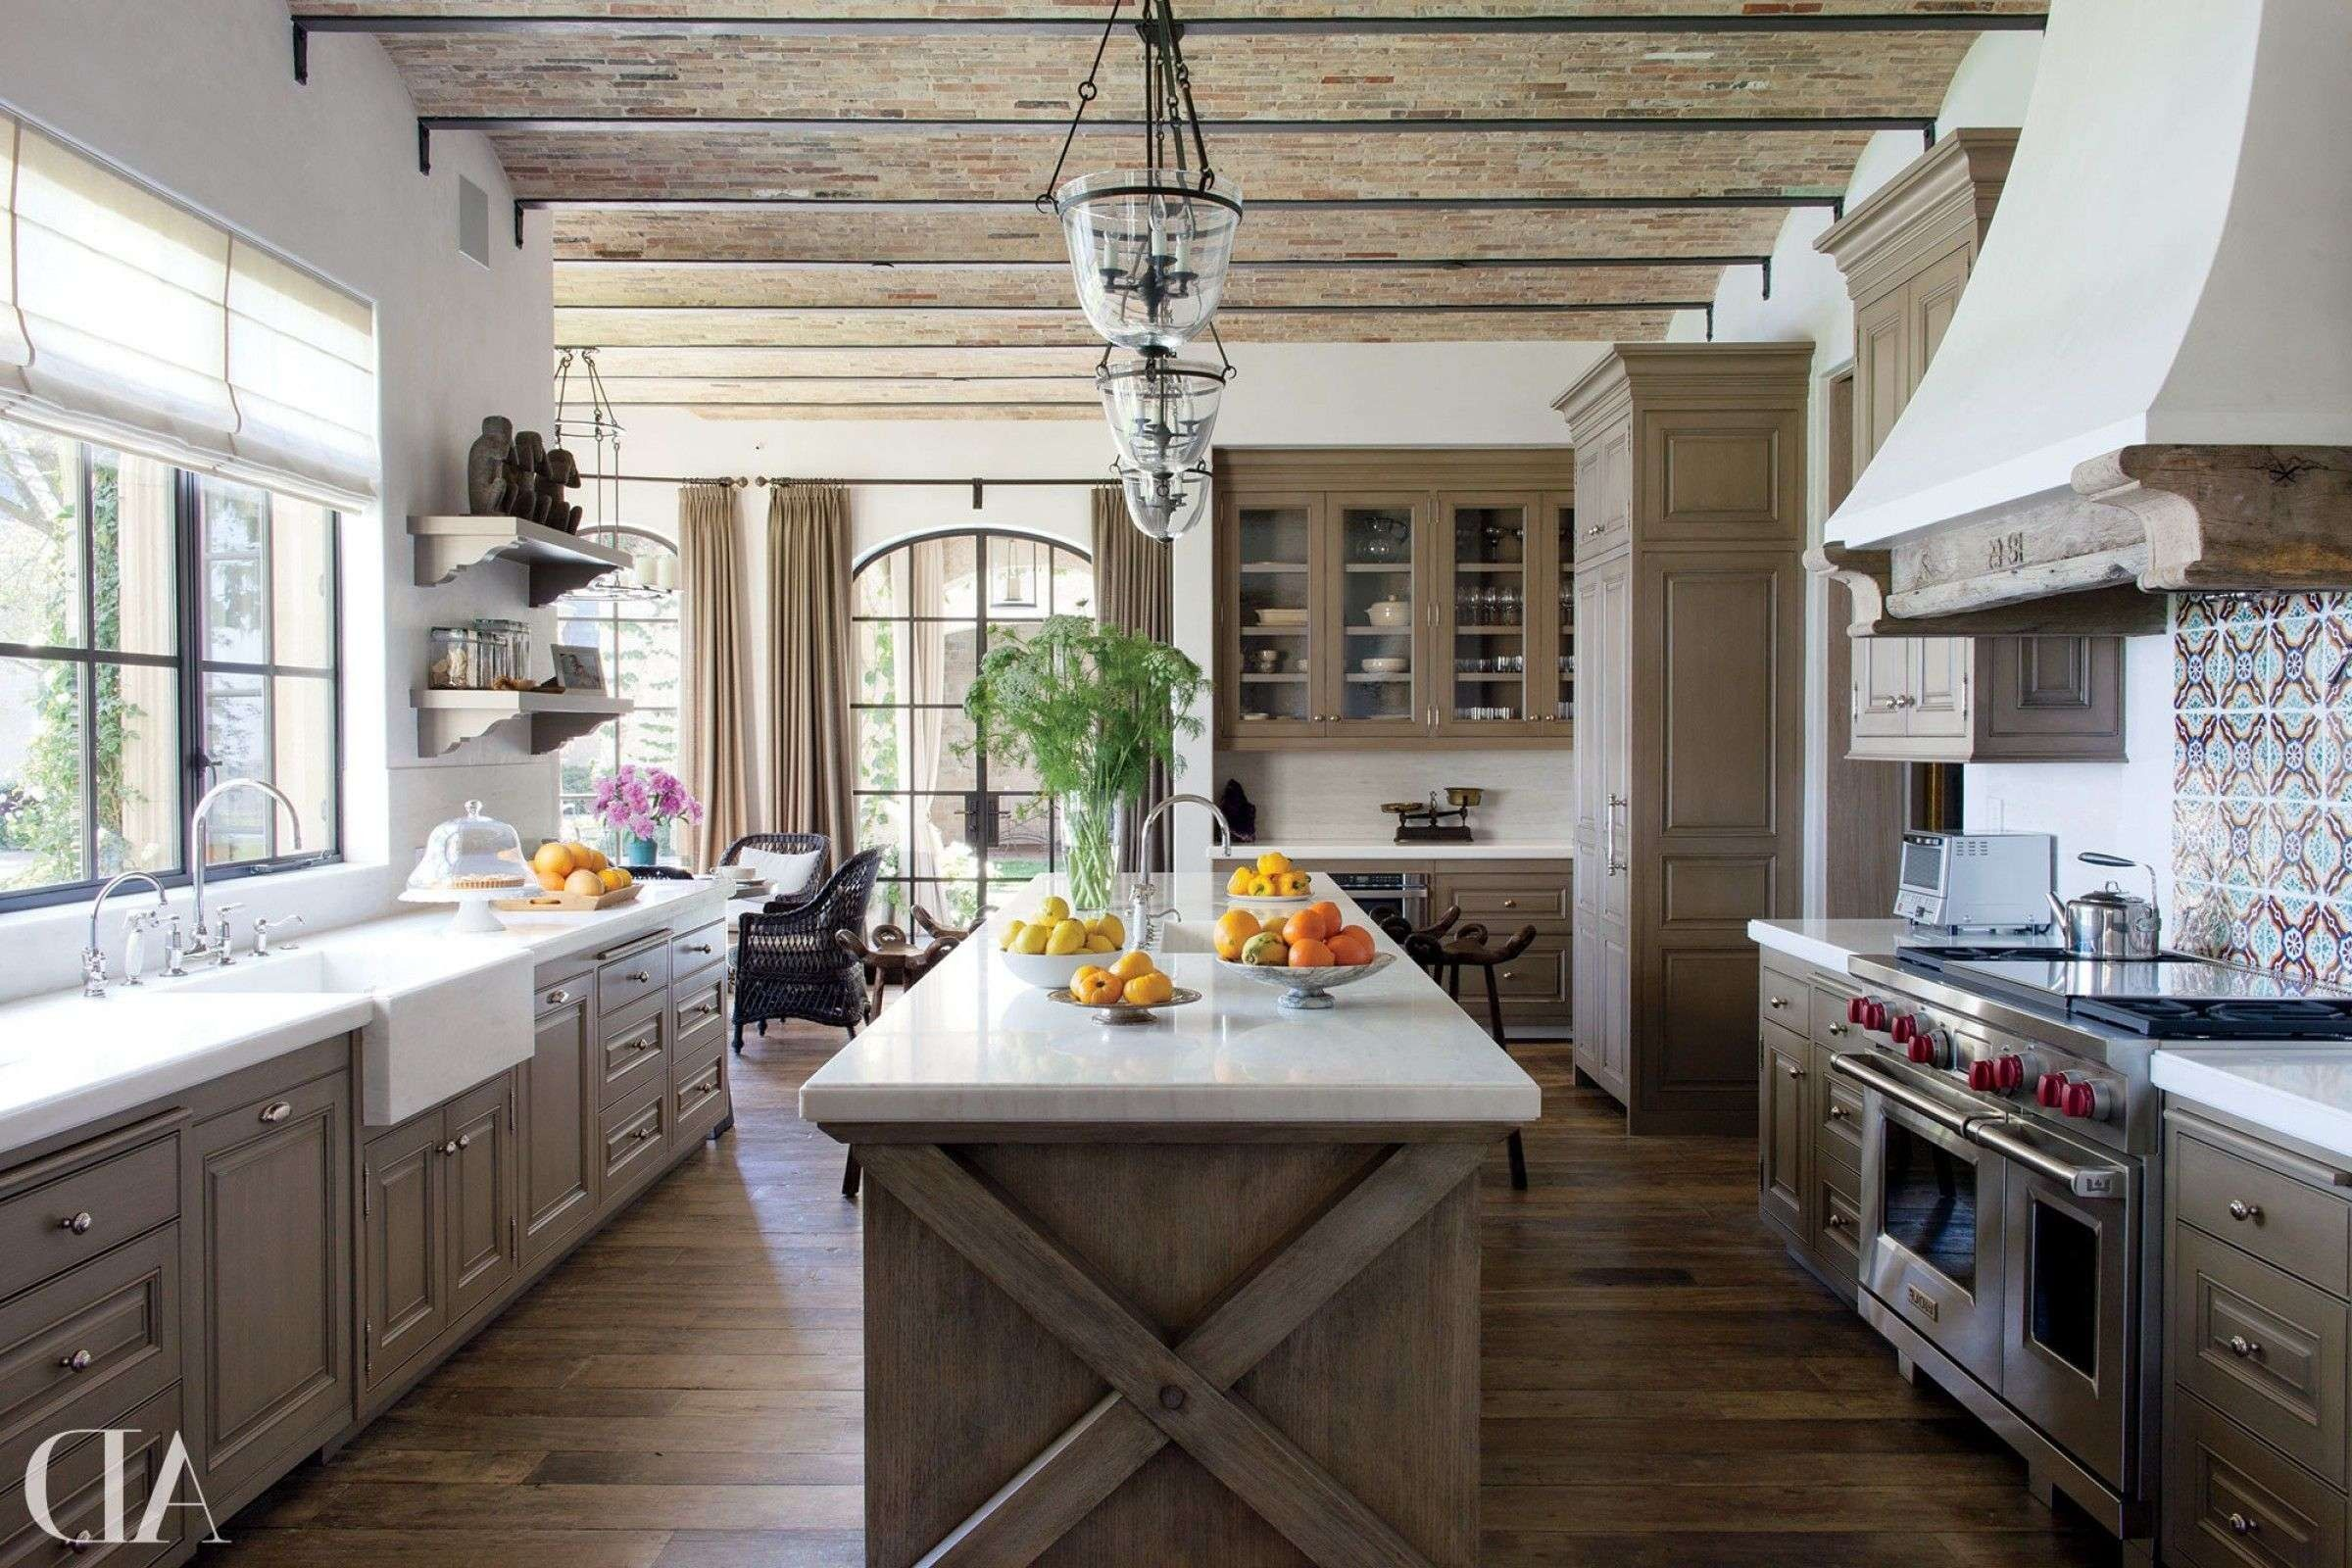 extraordinary modern e kitchen of french country backsplash luxury rustic kitchen farmhouse on kitchen remodel modern farmhouse id=44942